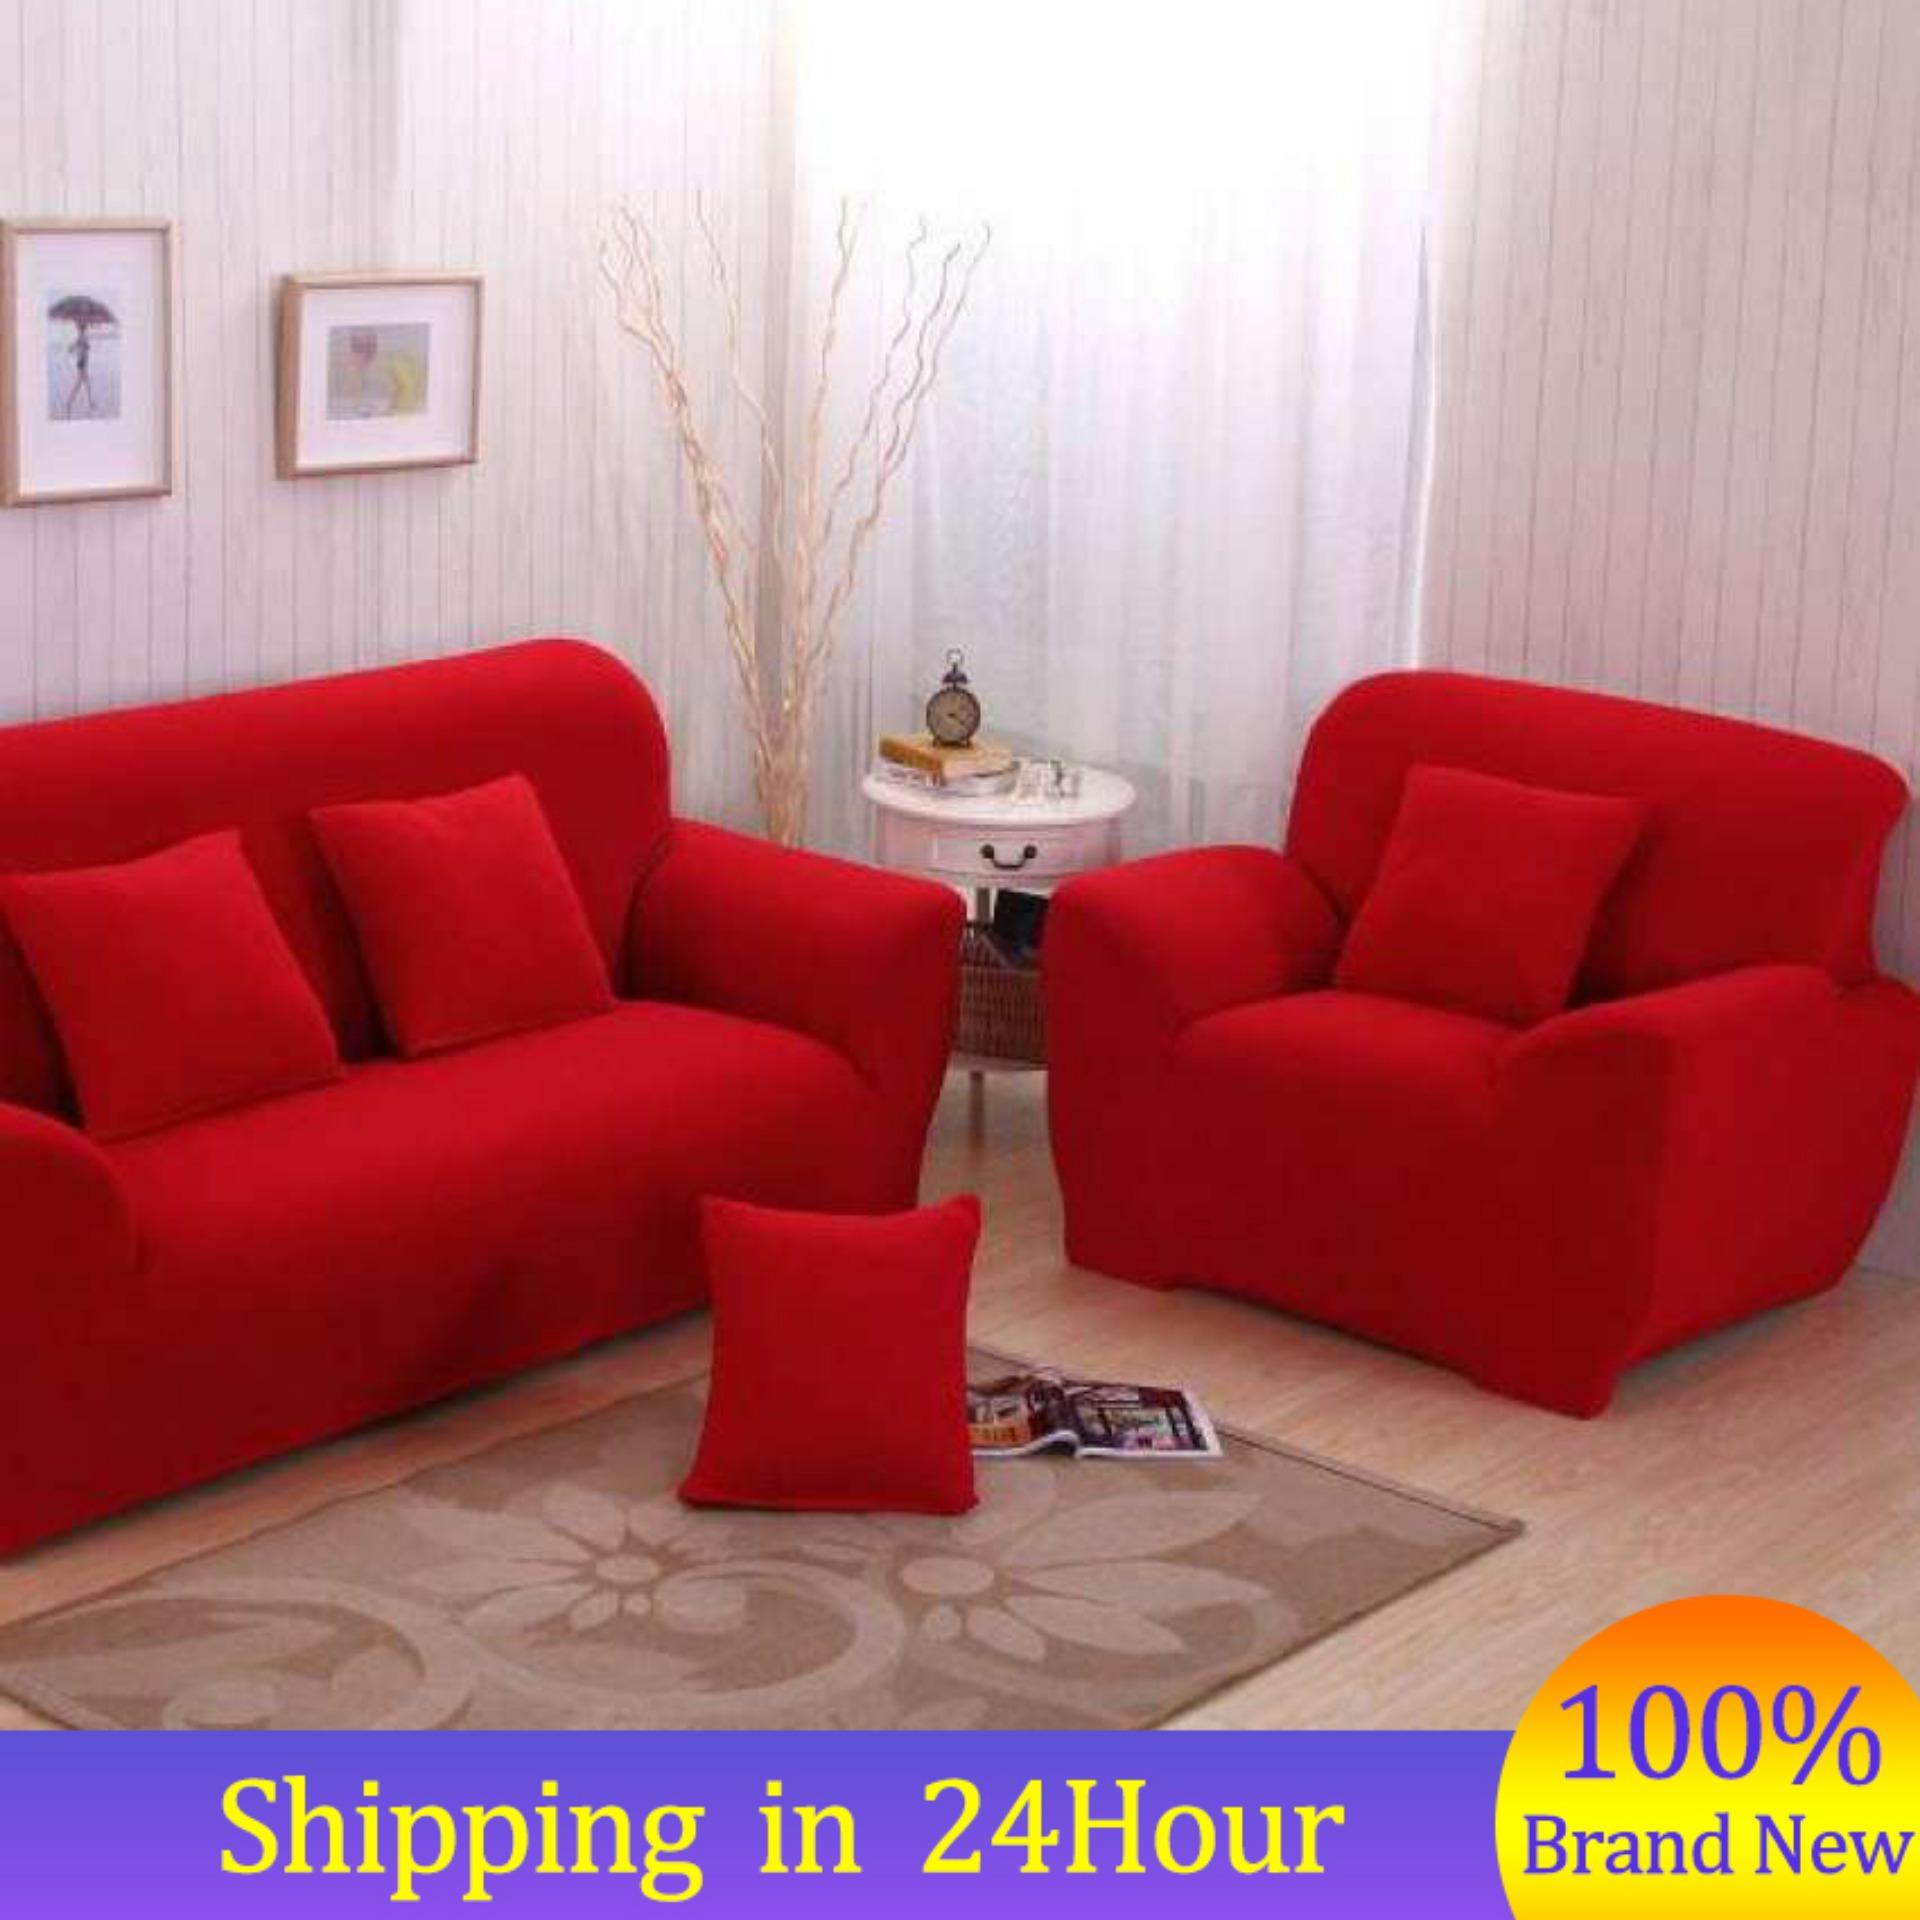 Furniture for sale - Furnitures prices, brands & review in Philippines | Lazada.com.ph